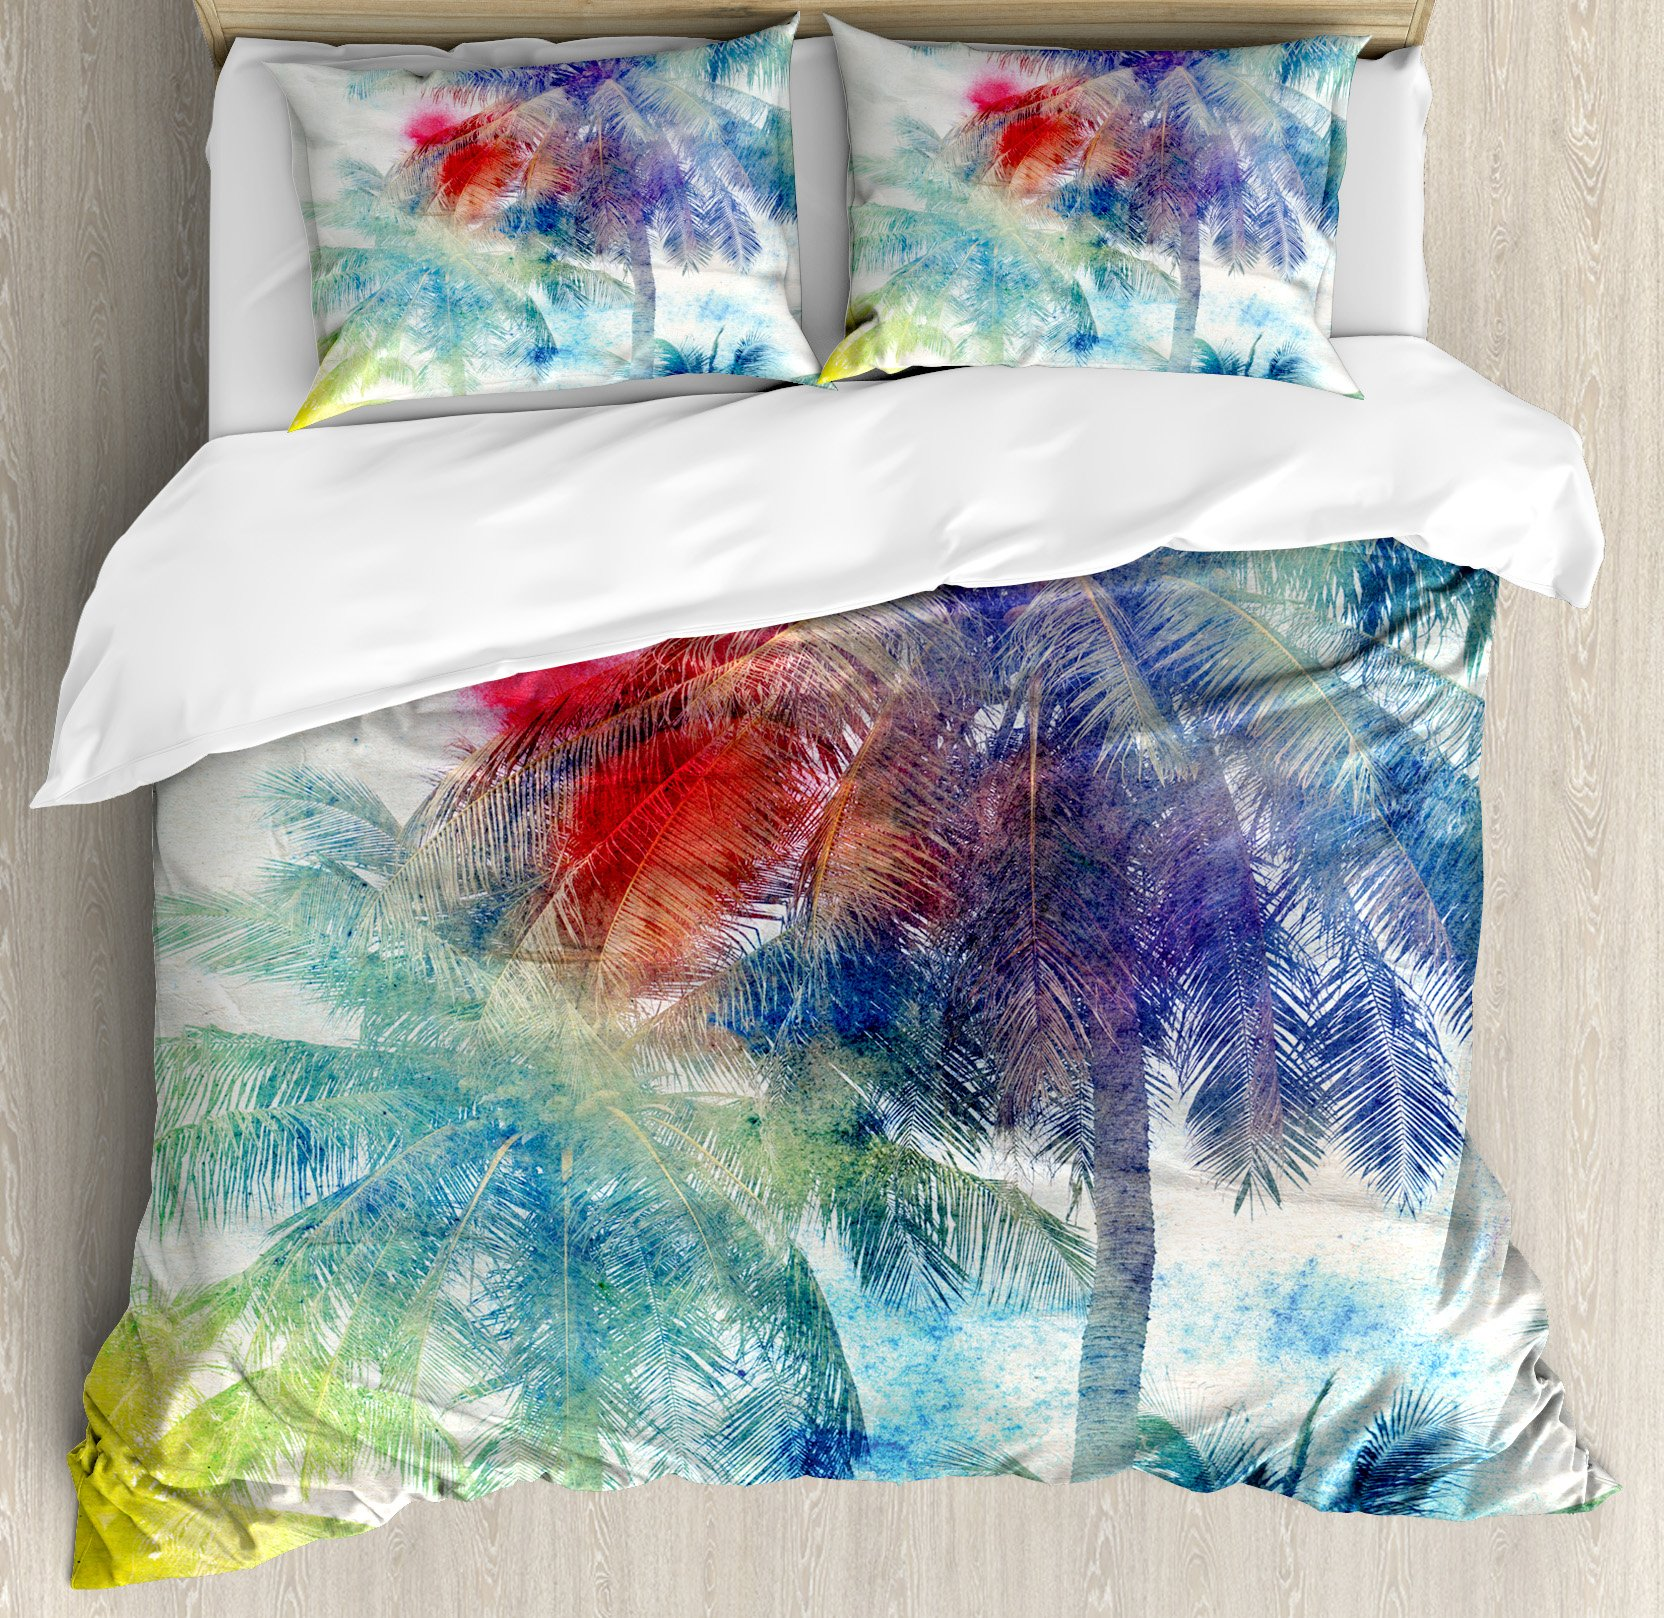 Ambesonne Palm Tree Duvet Cover Set, Retro Watercolor Silhouettes of Palm Trees Stains on Tropical Paradise Theme, Decorative 3 Piece Bedding Set with 2 Pillow Shams, King Size, Sepia Purple